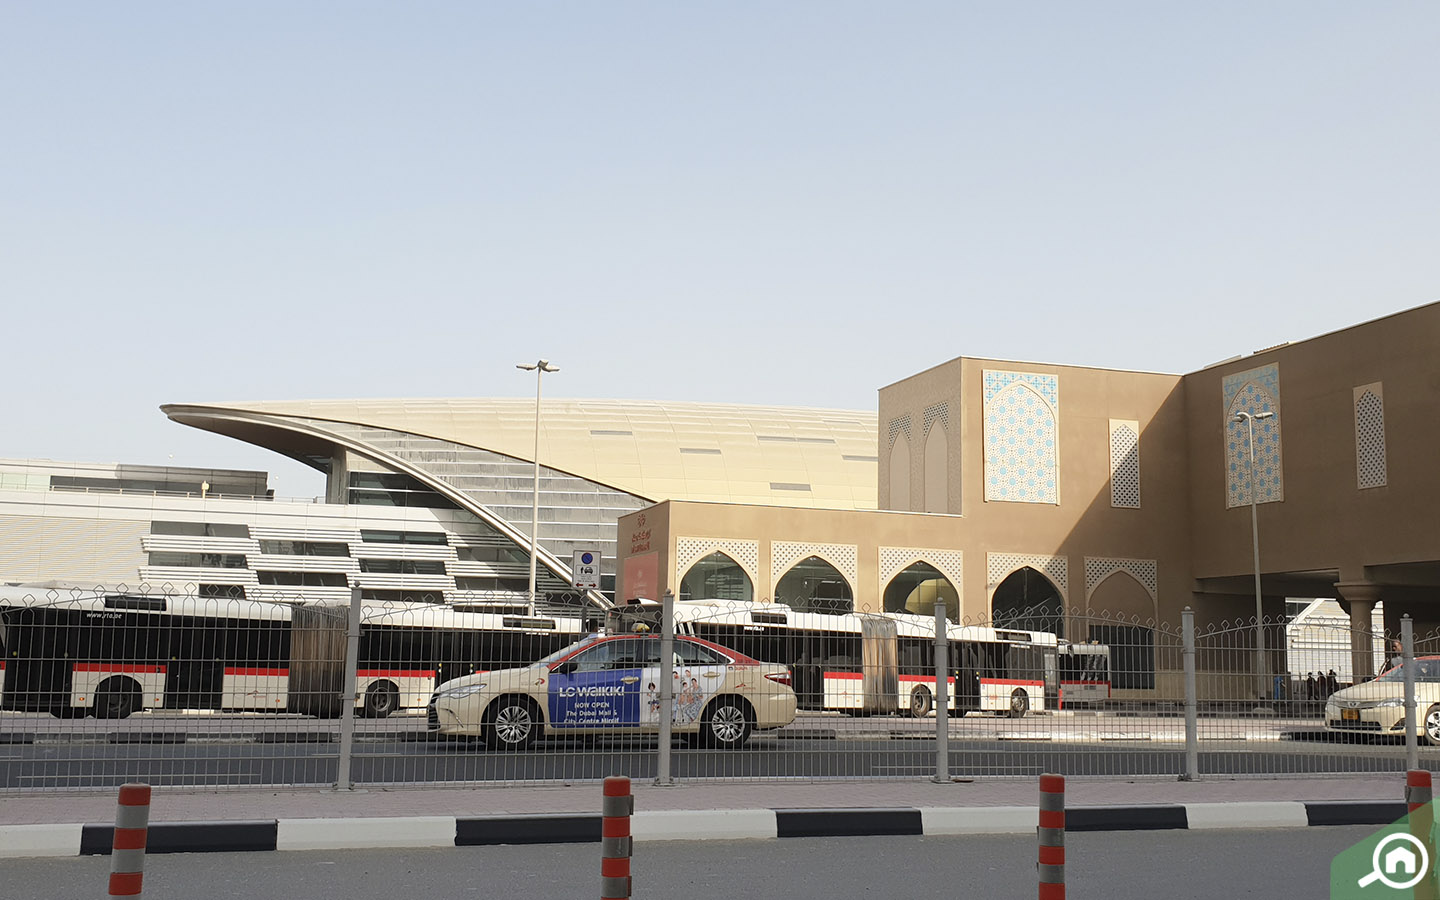 View of Ibn Battuta Mall Metro Station and RTA Buses